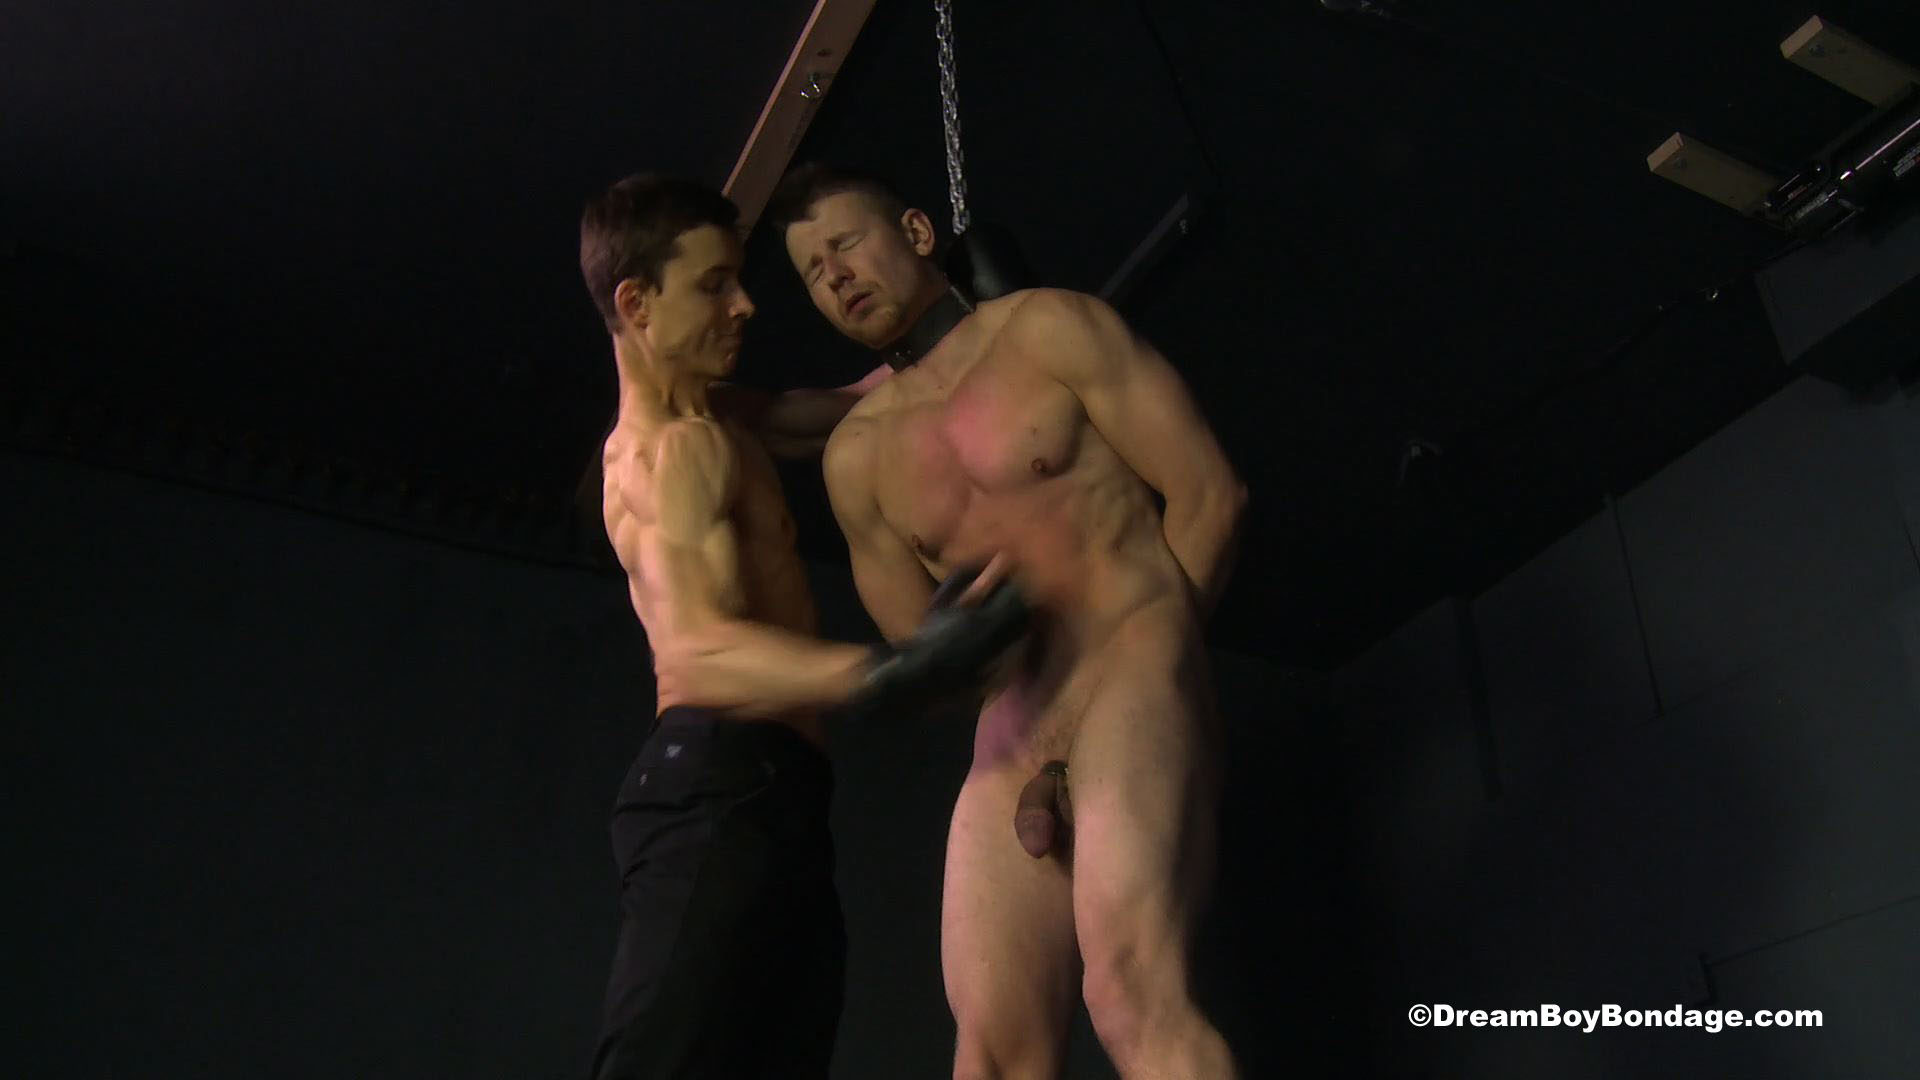 Gay Male Bondage Videos 102